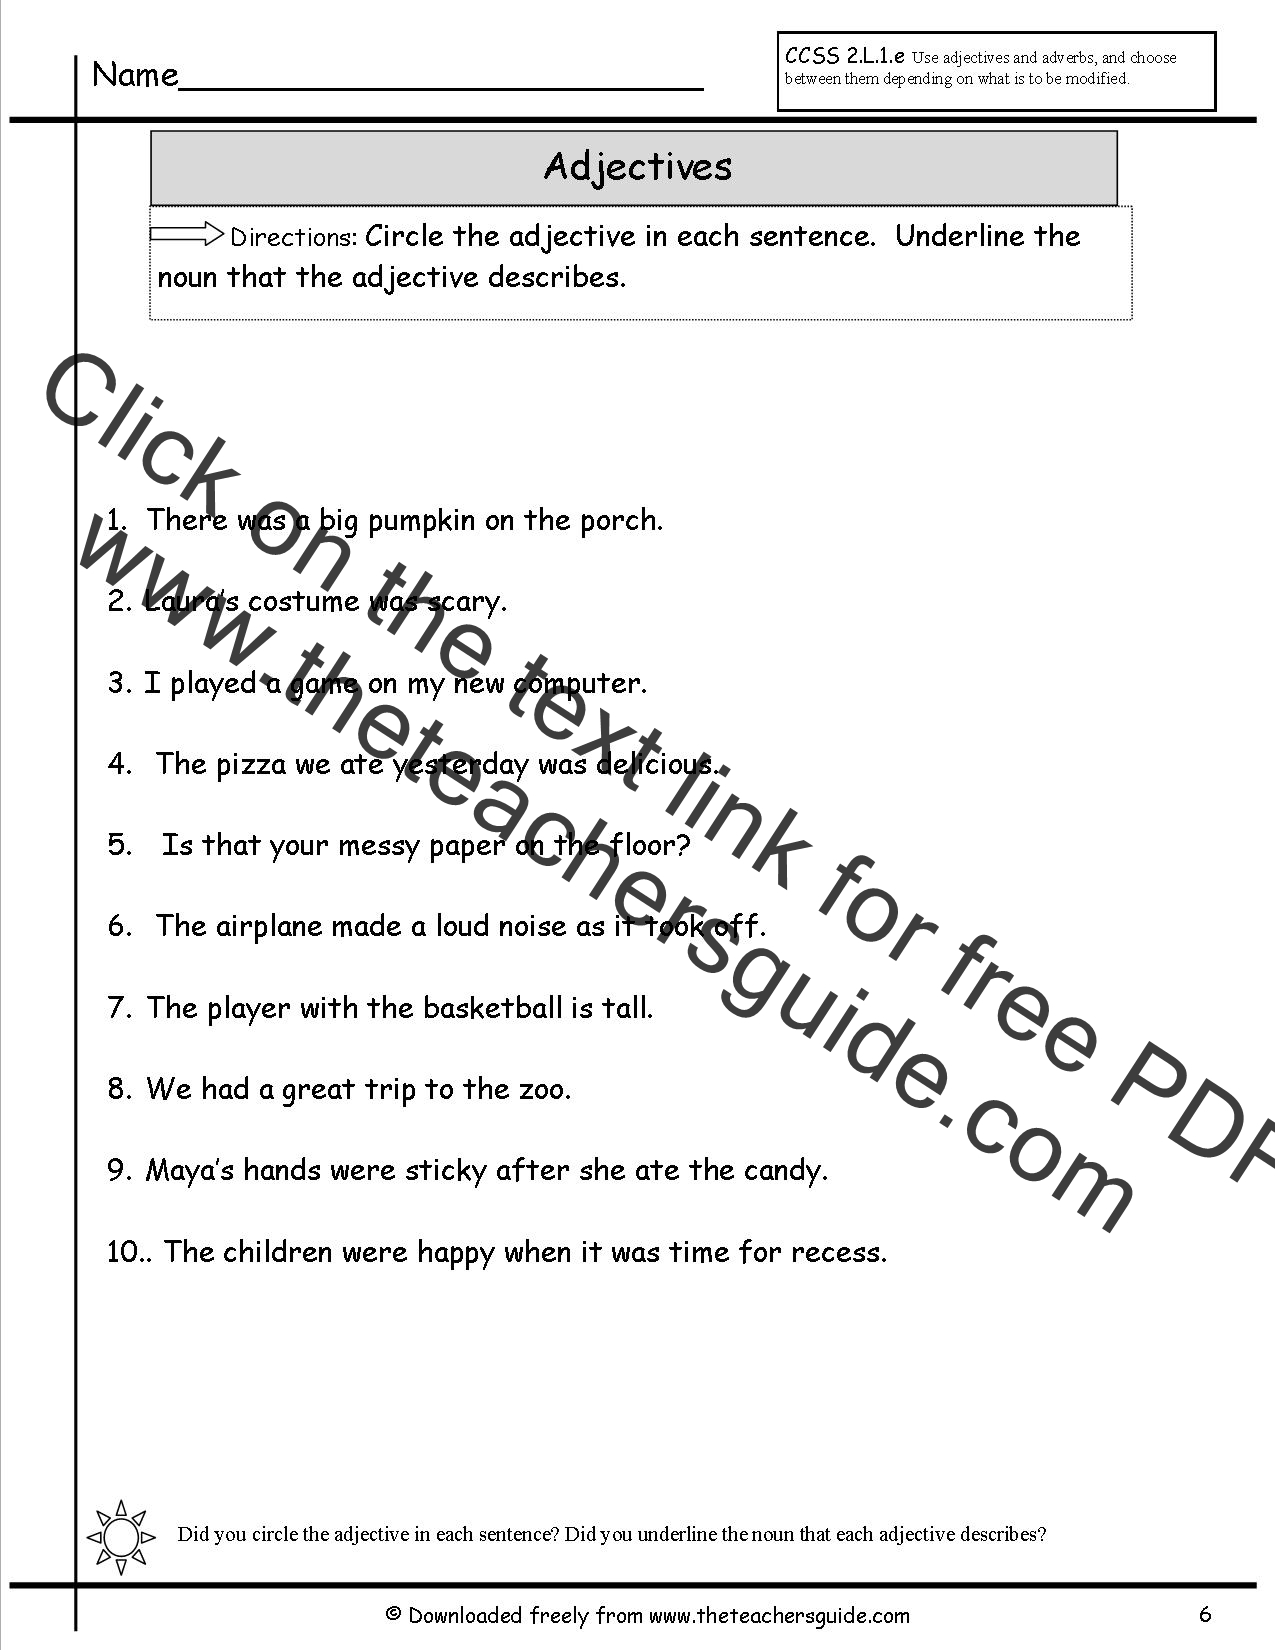 hight resolution of Worksheet On Adjectives For Grade 7 With Answers   Printable Worksheets and  Activities for Teachers